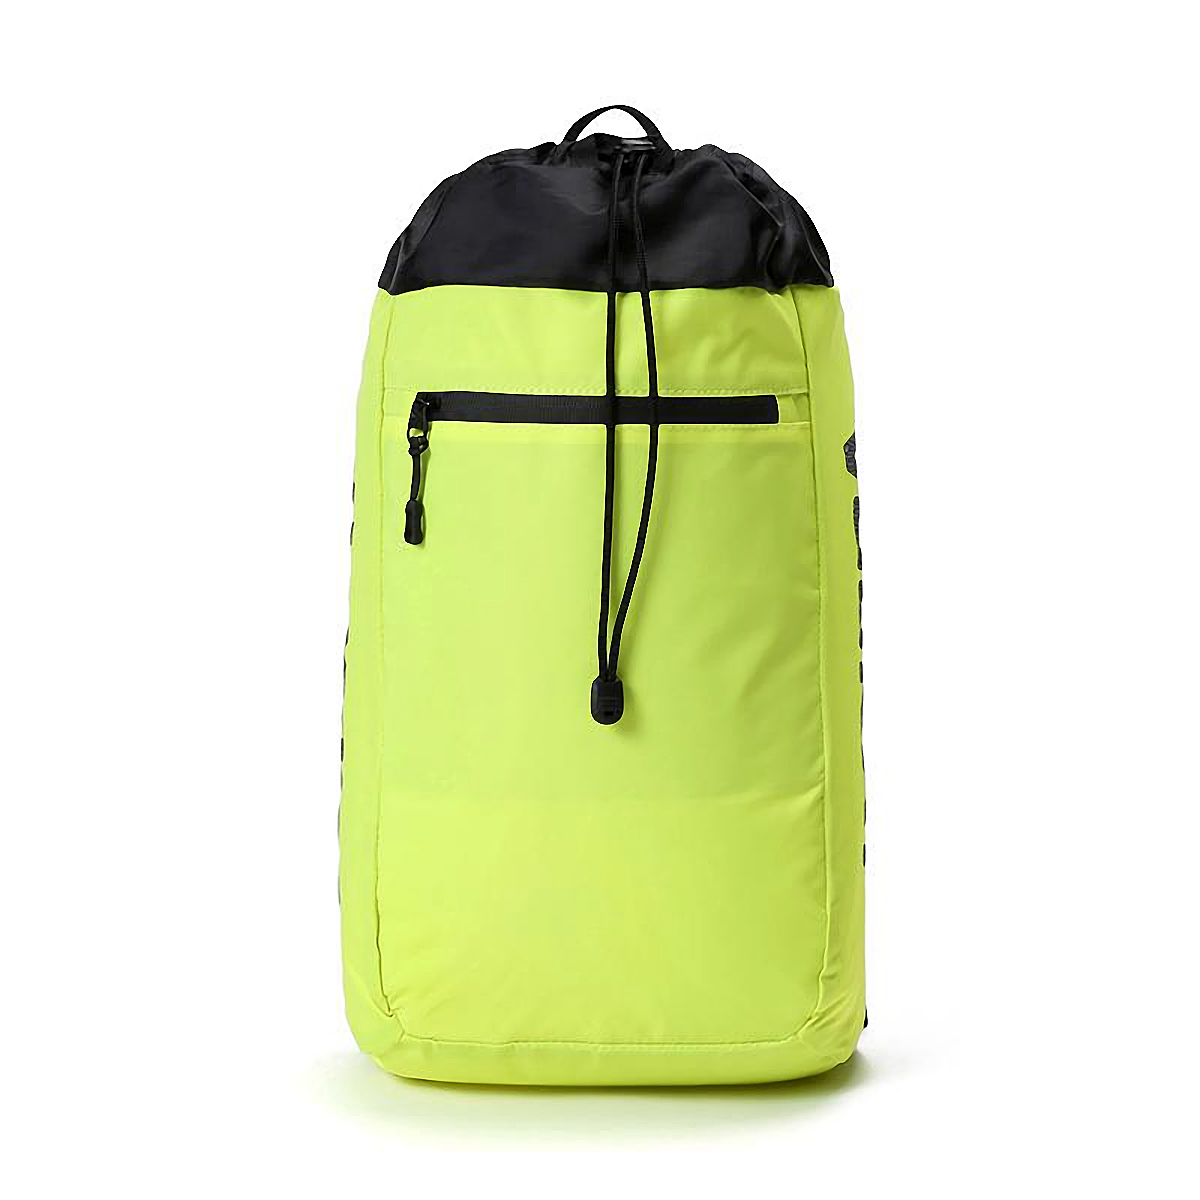 Vooray Stride Cinch Backpack - Color: Neon Yellow - Size: OS, Neon Yellow, large, image 1